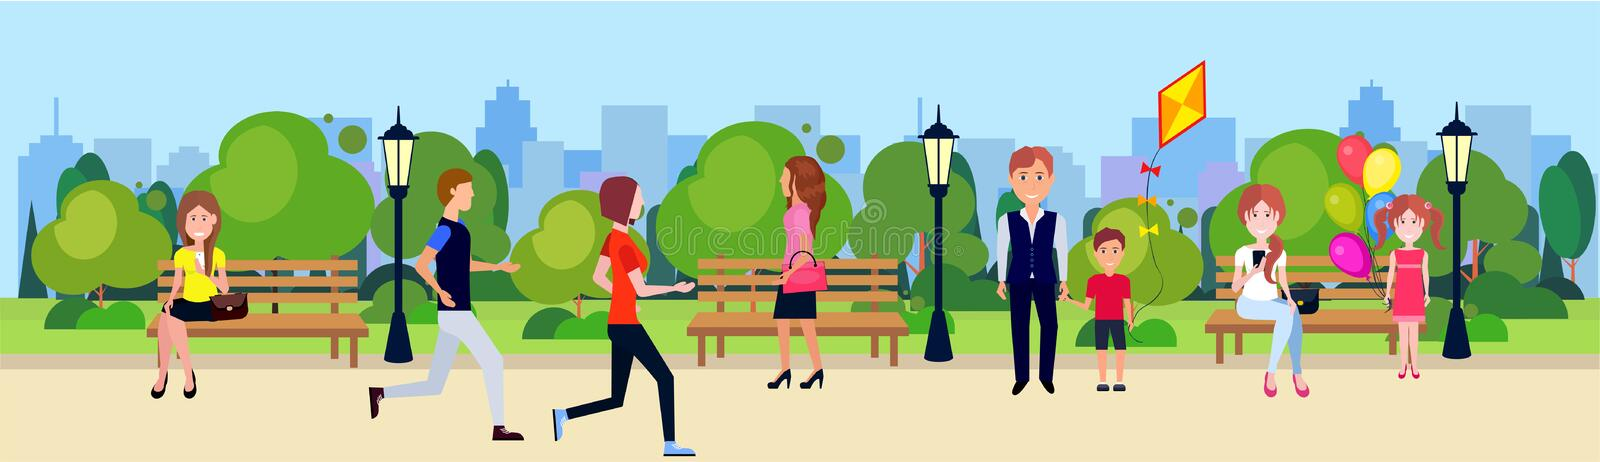 Public park people active relax sitting wooden bench outdoors walking cycling running green lawn trees on city buildings. Template background flat banner vector stock illustration